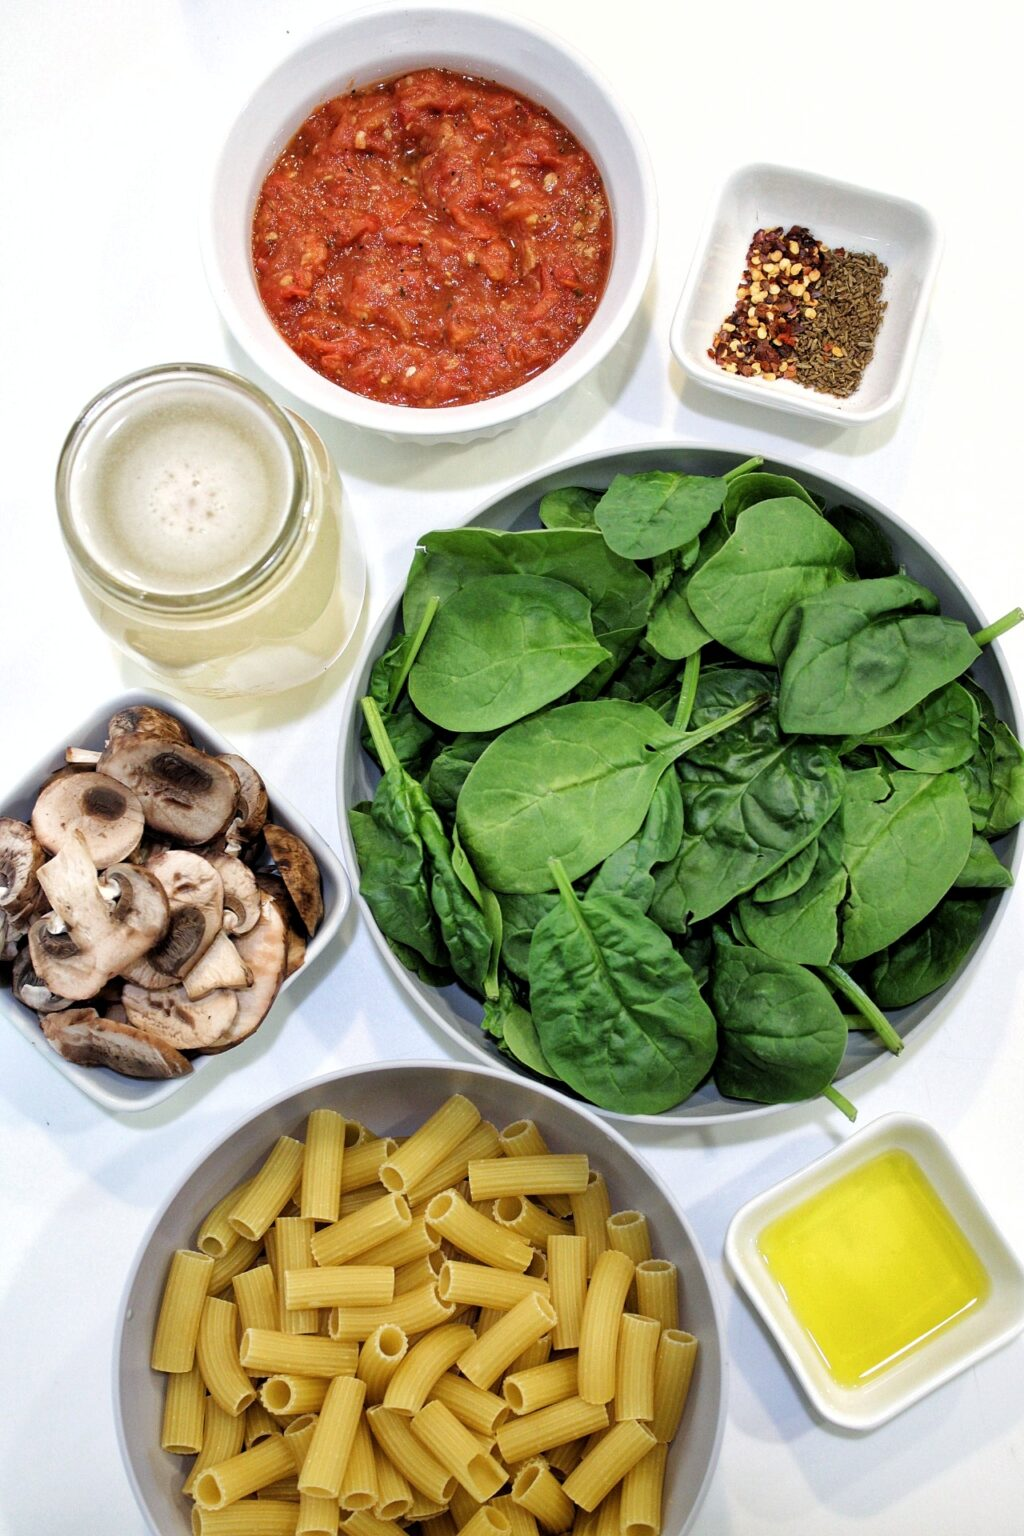 One-pot pasta ingredients: spinach, sliced mushrooms, mushroom broth, rigatoni pasta, olive oil, roasted tomatoes, spices